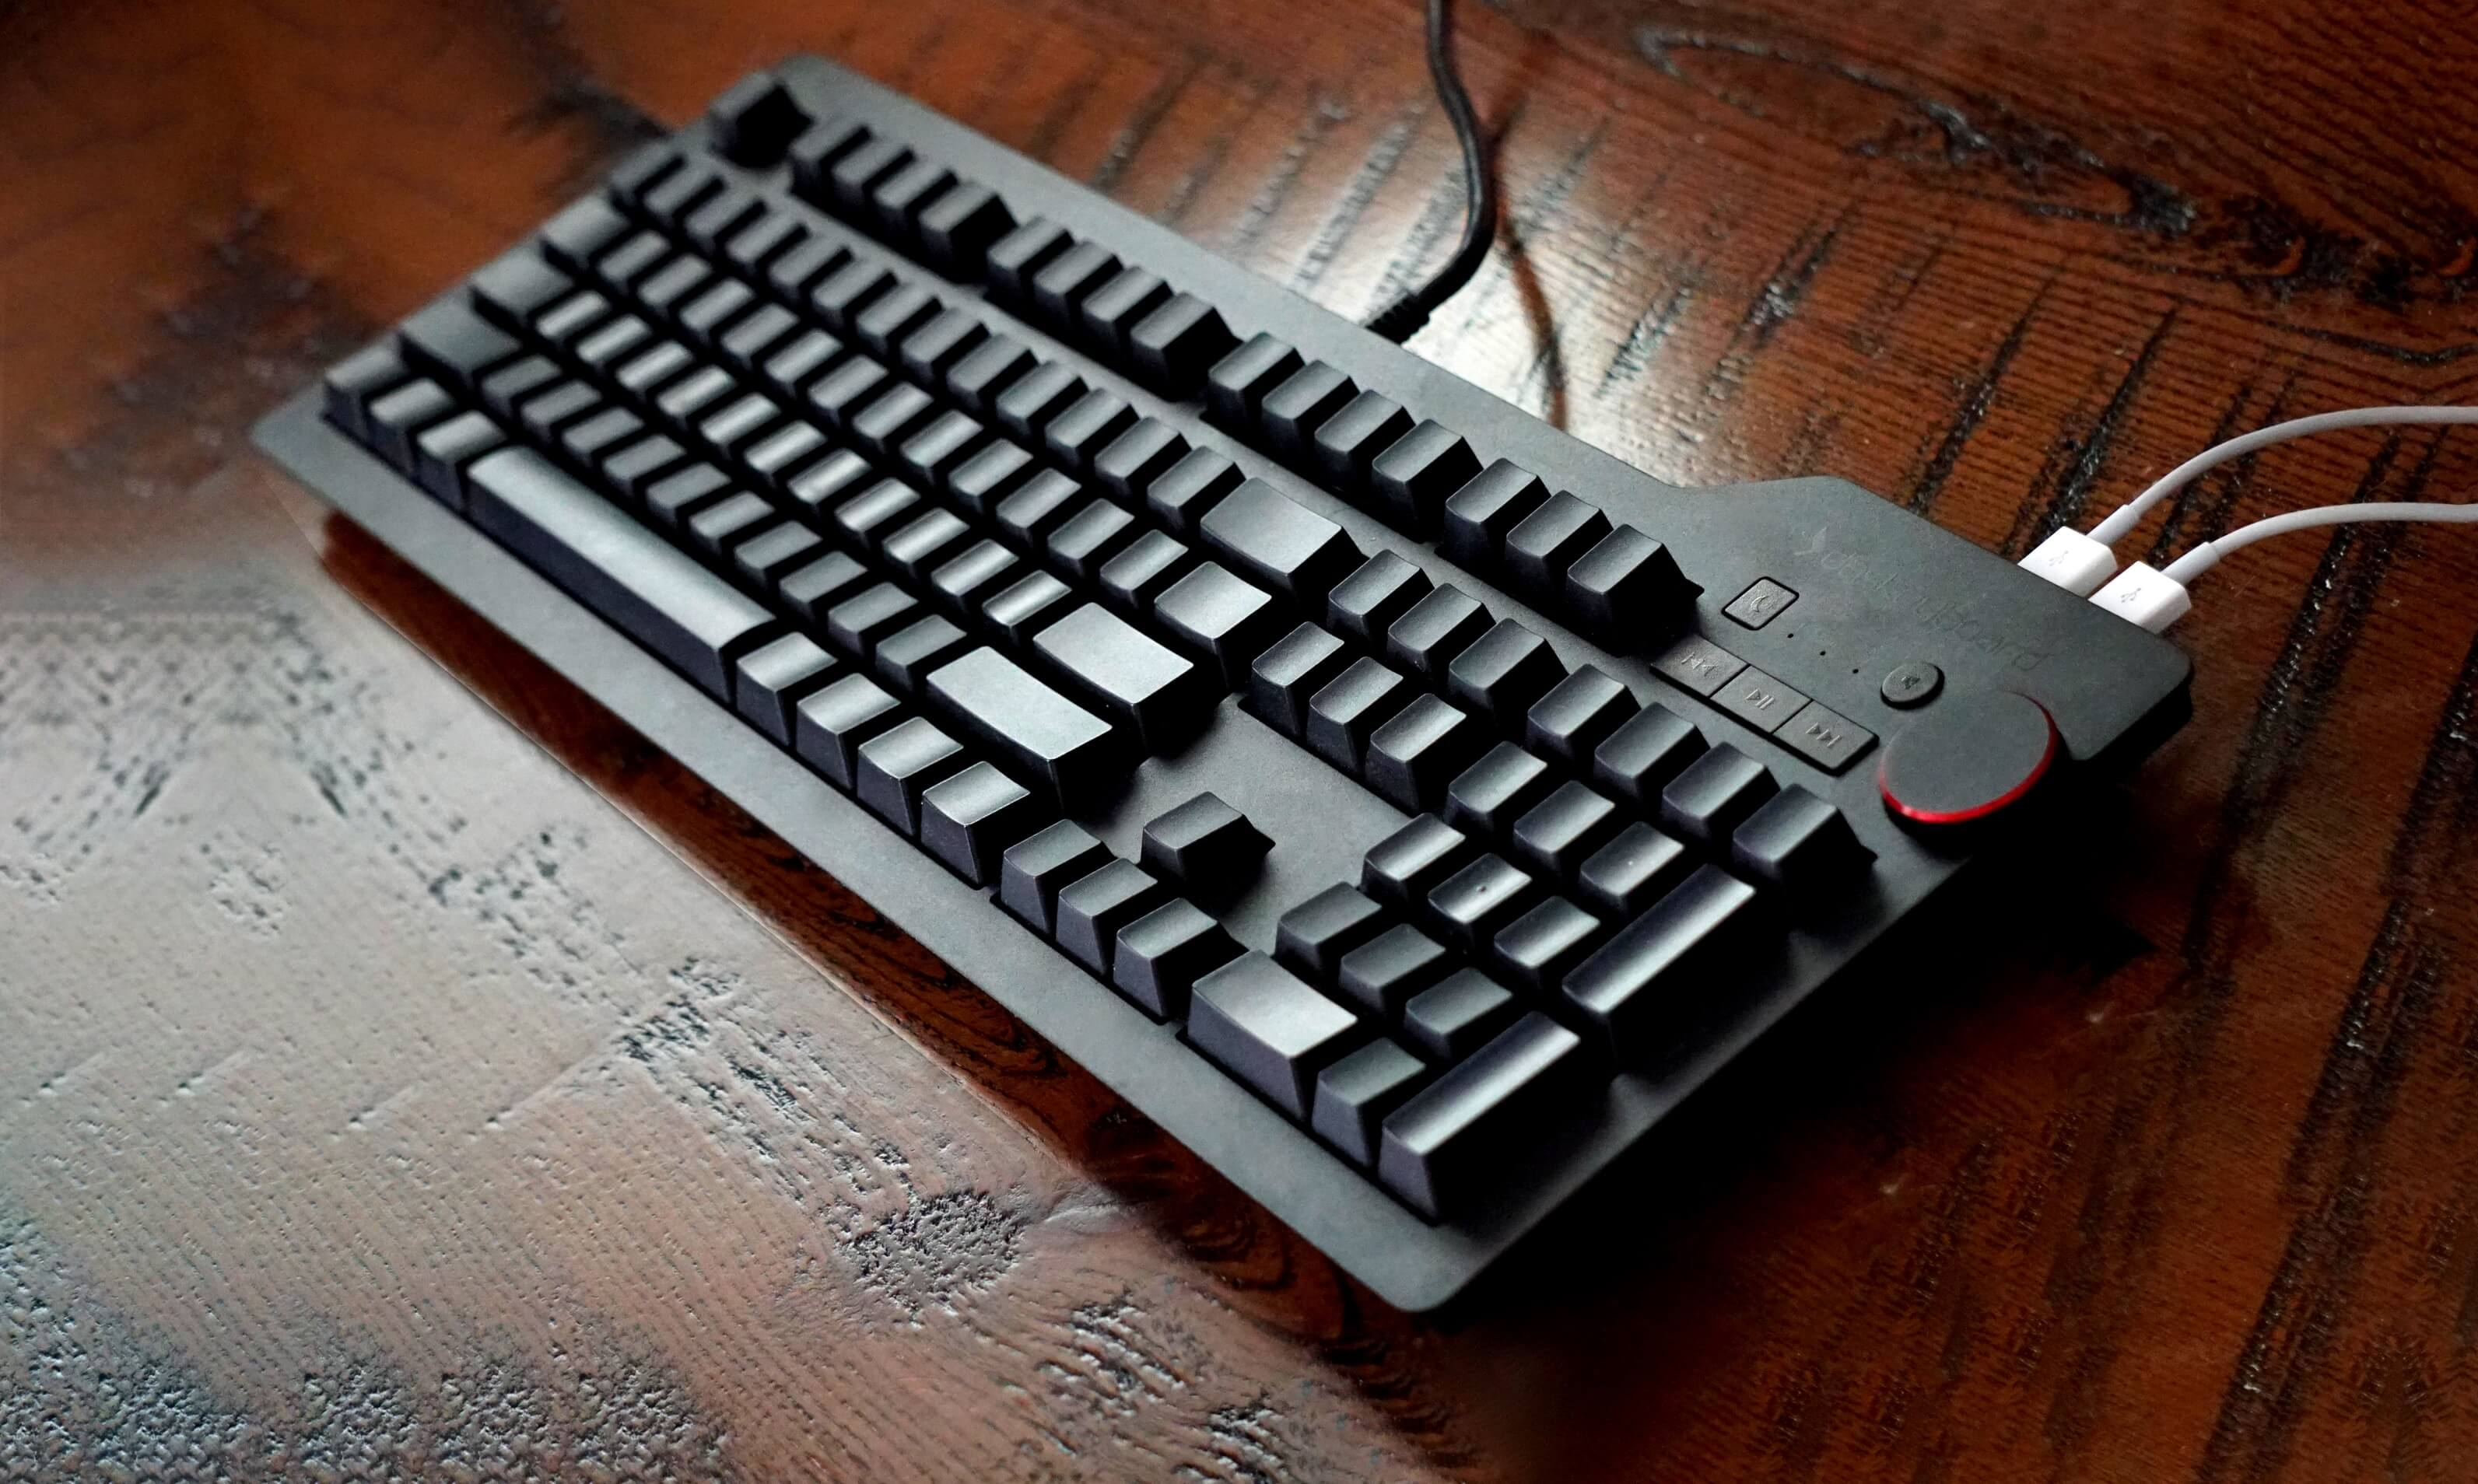 The Best Keyboards 2018 - TechSpot